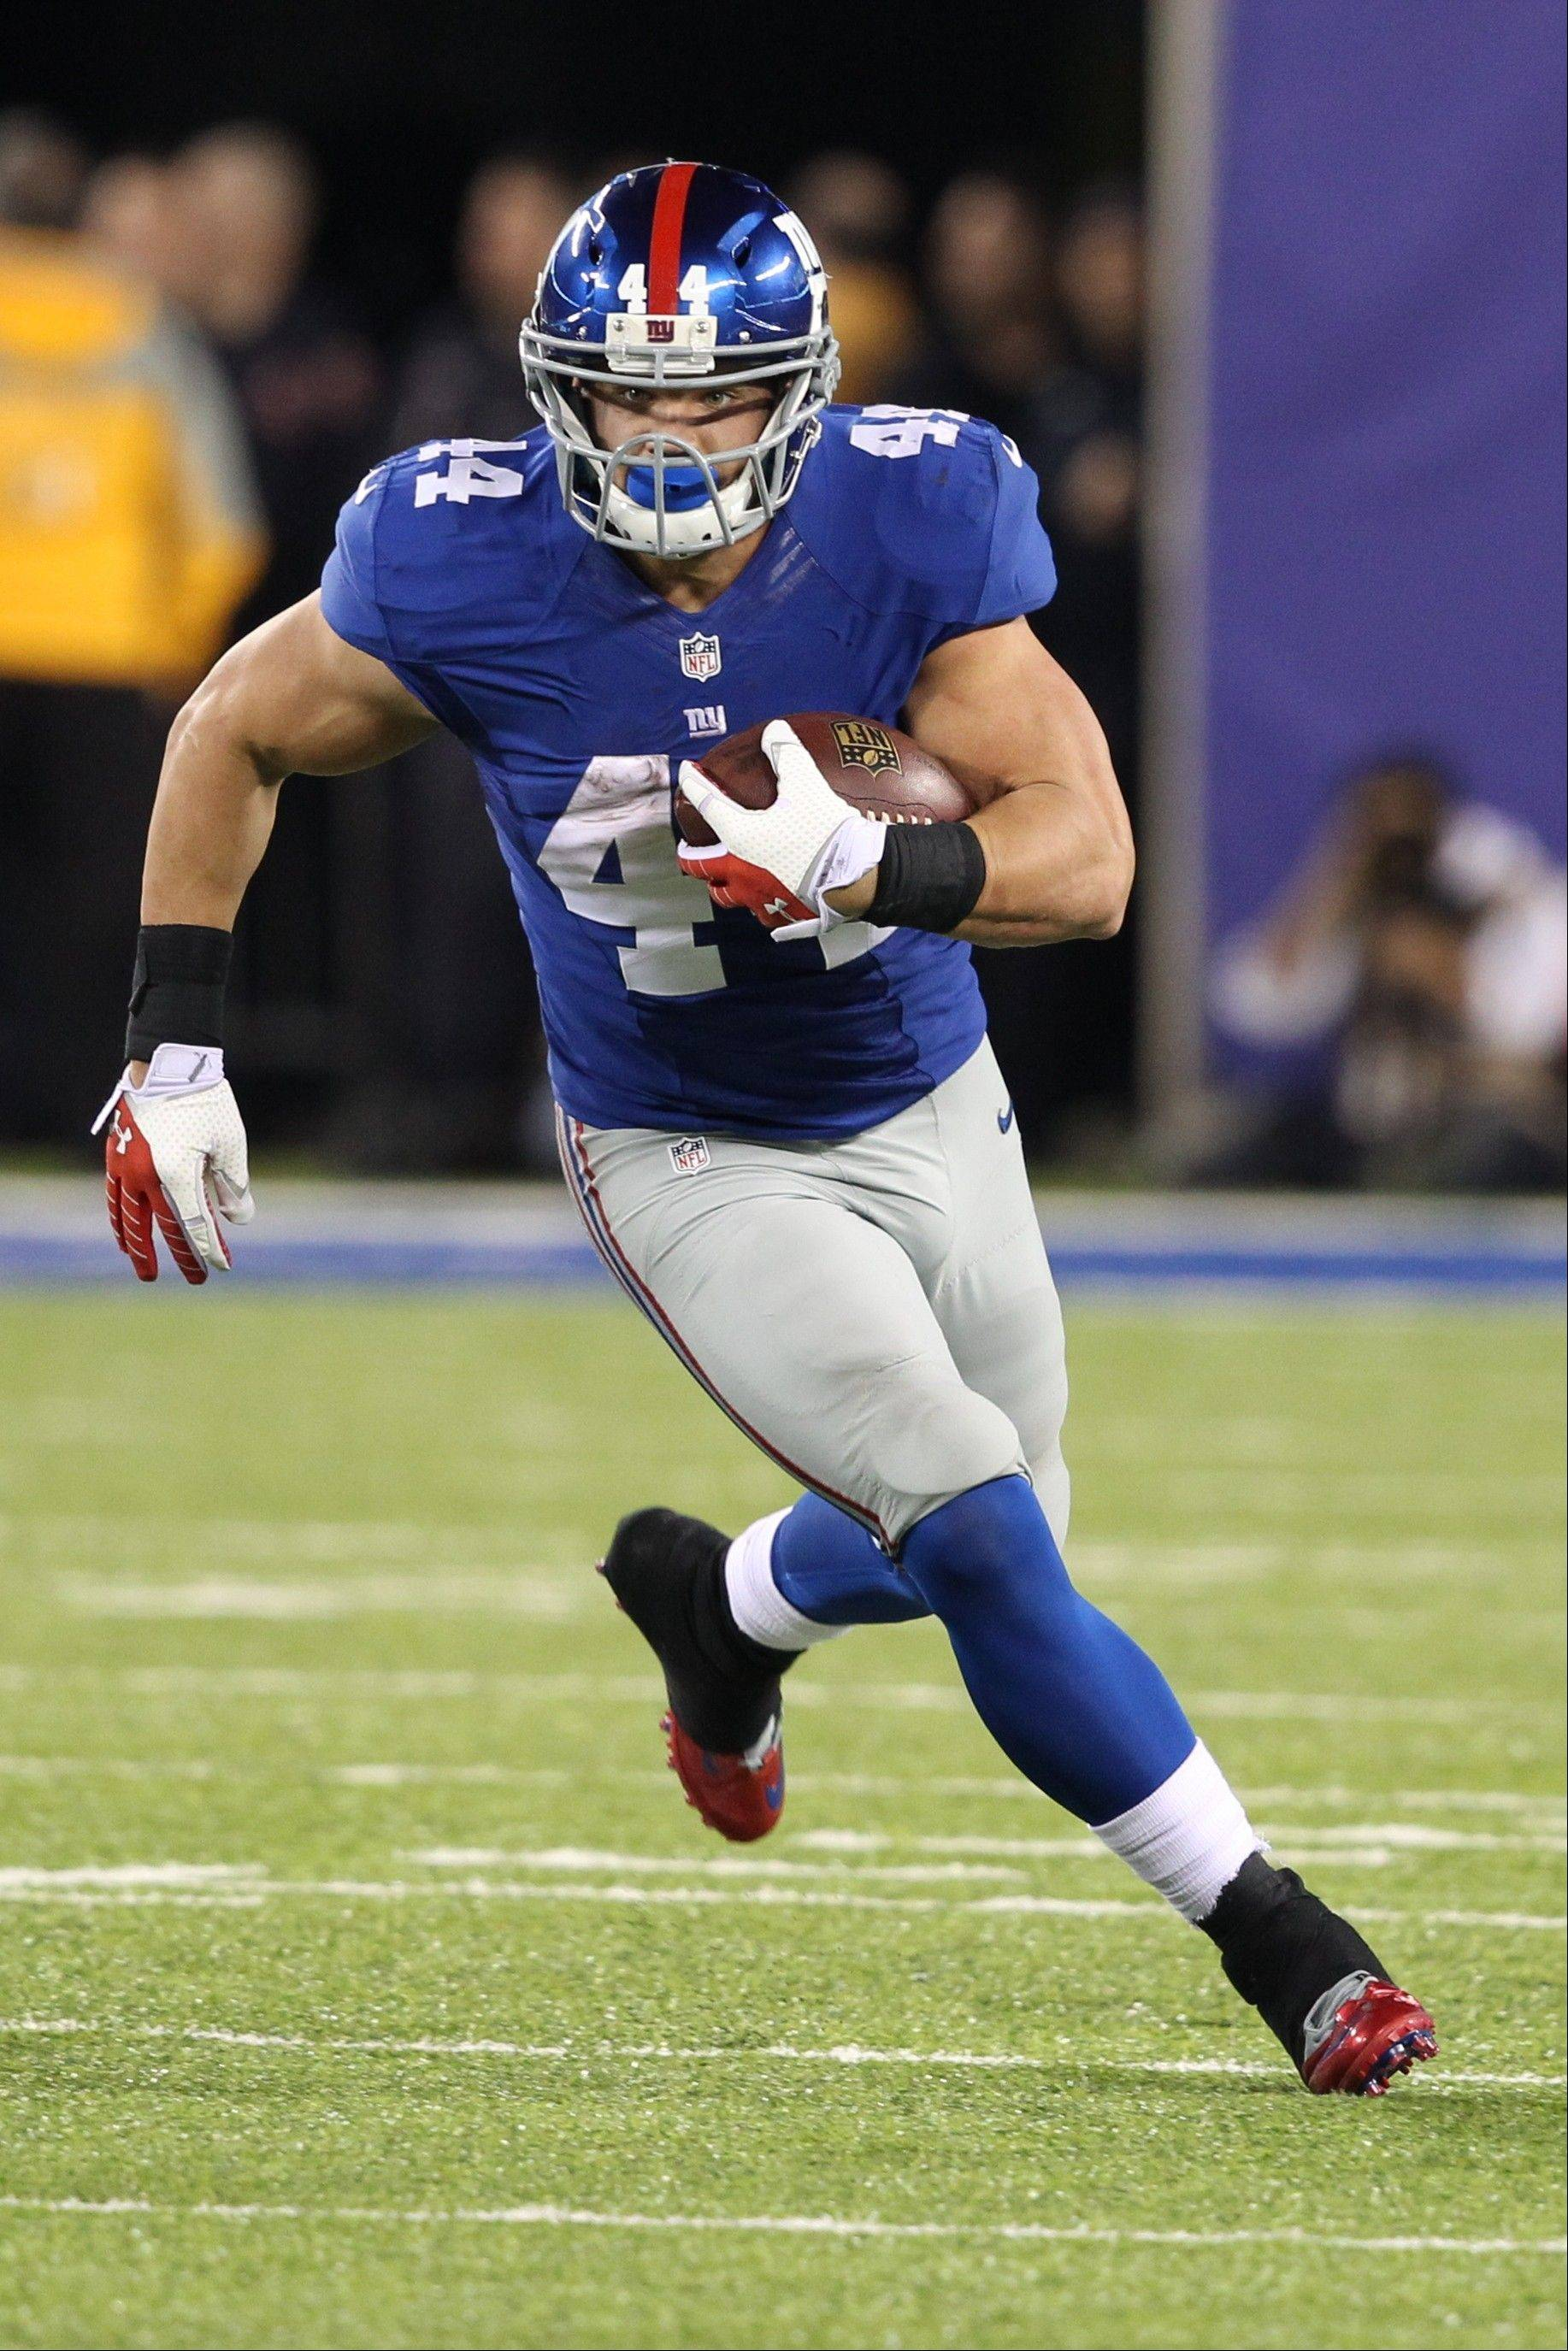 Newly acquired running back Peyton Hillis rushed for 36 yards and a touchdown in the Giants' 23-7 win over the Vikings on Monday night in East Rutherford, N.J.